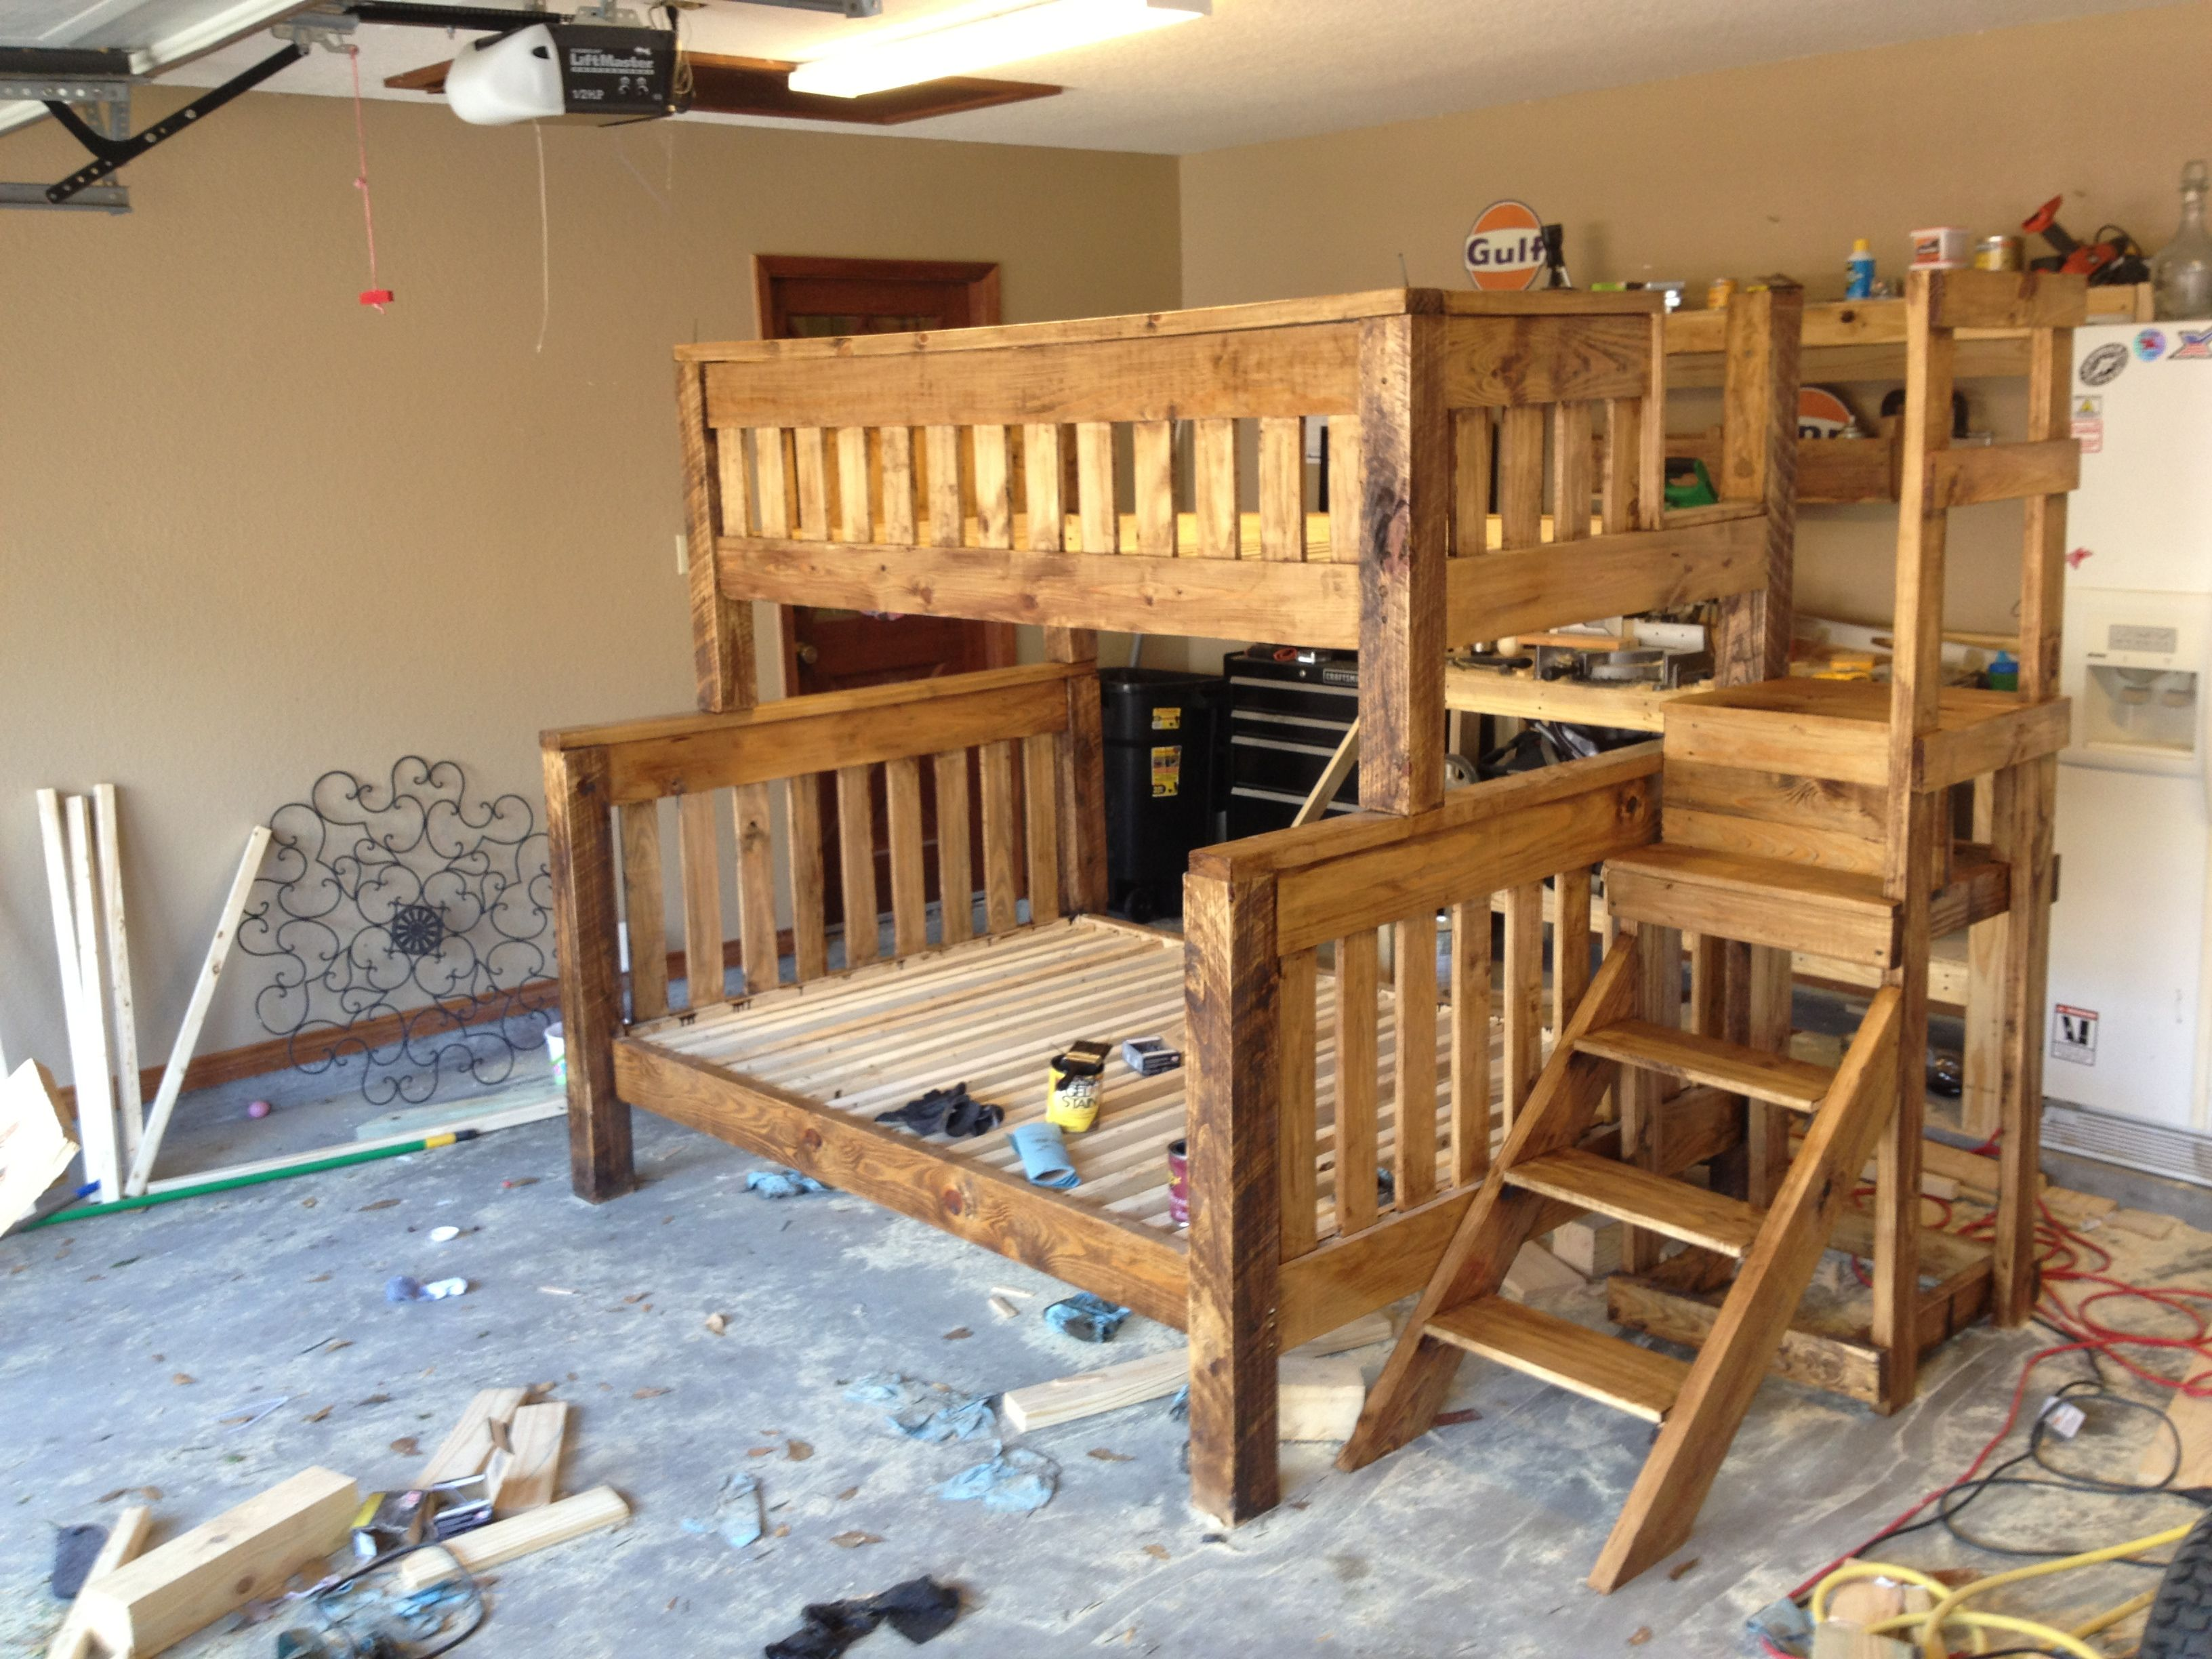 Download Original Queen Size Bunk Beds Full Size Bunk Beds Double Bunk Beds